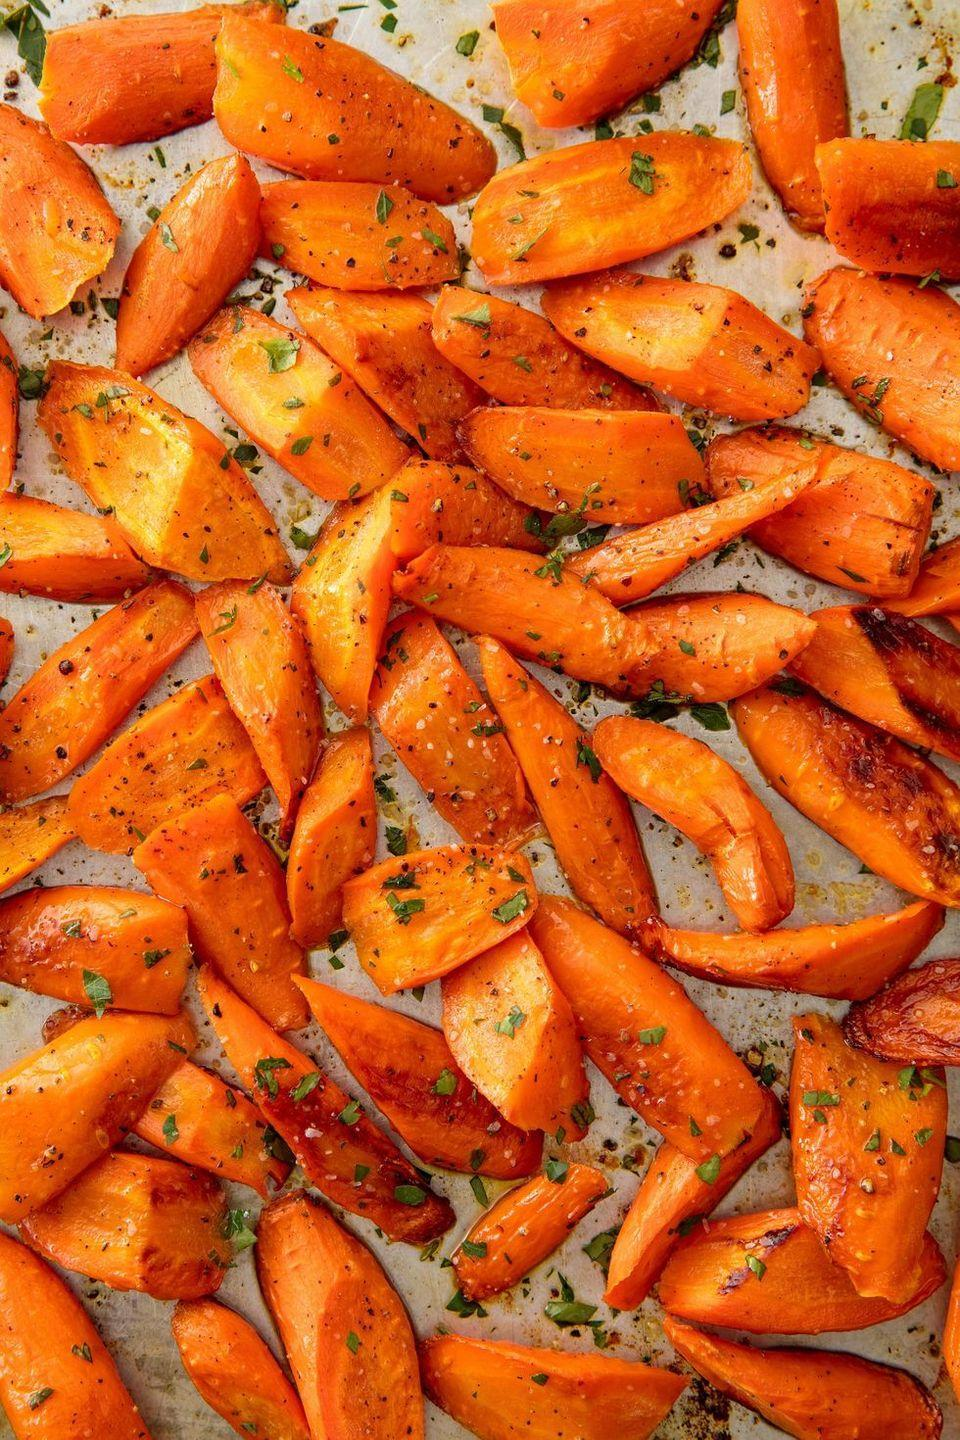 """<p>Our biggest piece of advice: Don't overcrowd the pan. </p><p> the <a href=""""https://www.delish.com/uk/cooking/recipes/a29571518/oven-roasted-carrots-recipe/"""" rel=""""nofollow noopener"""" target=""""_blank"""" data-ylk=""""slk:Roasted Carrots"""" class=""""link rapid-noclick-resp"""">Roasted Carrots</a> recipe.</p>"""